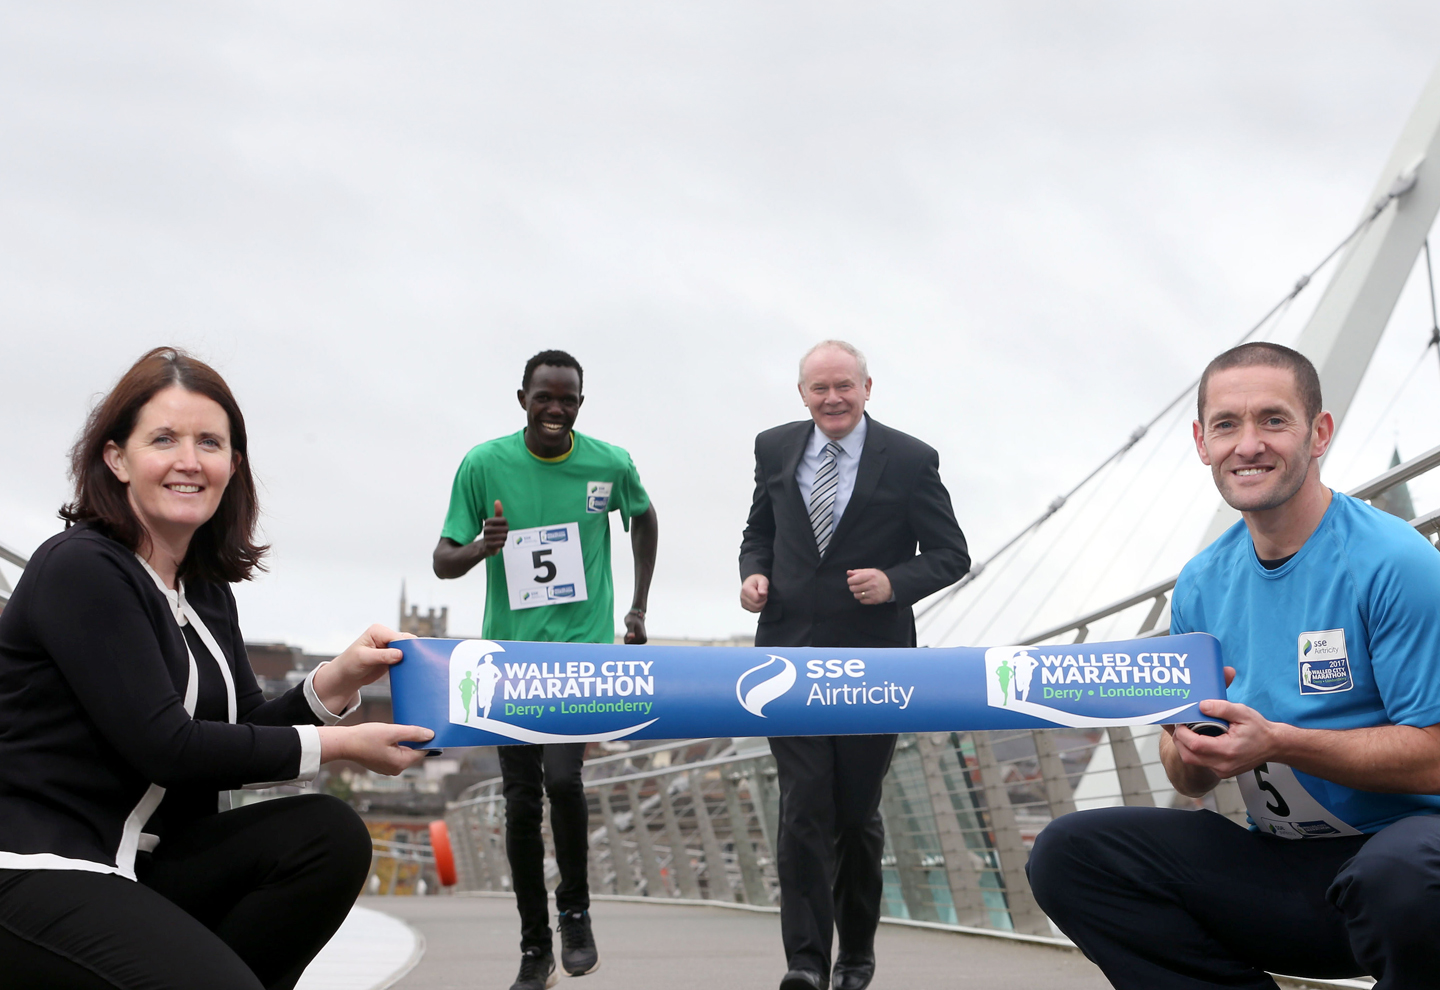 On your marks: Deputy First Minister launches fifth SSE Airtricity Walled City Marathon